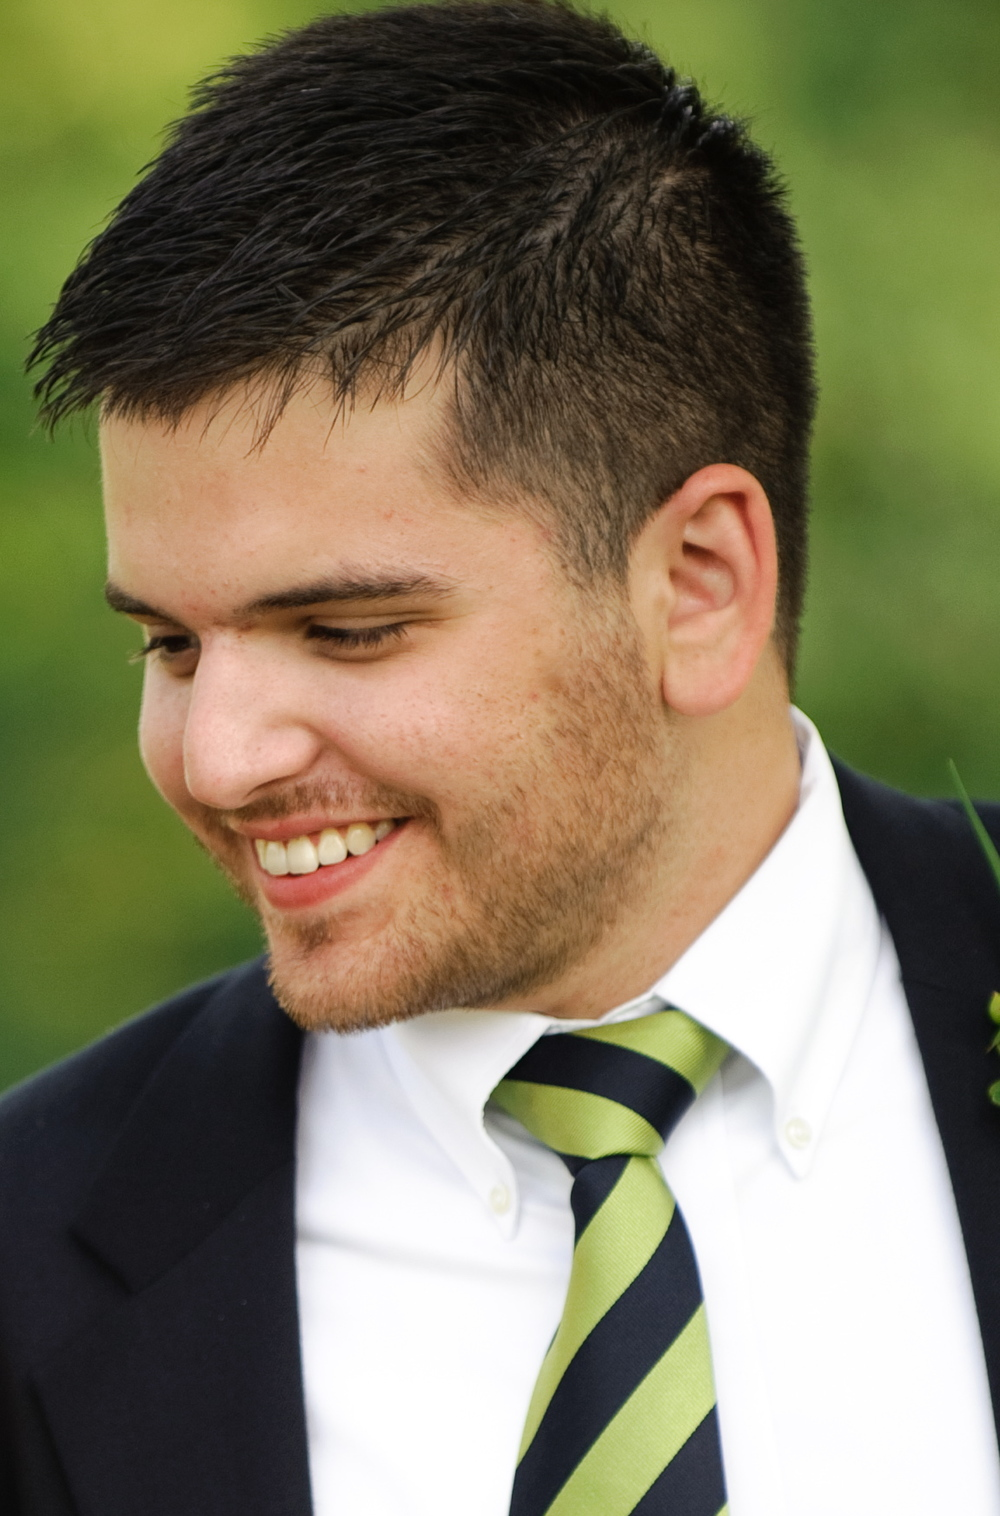 Zach-Head-shot-wedding1.jpg